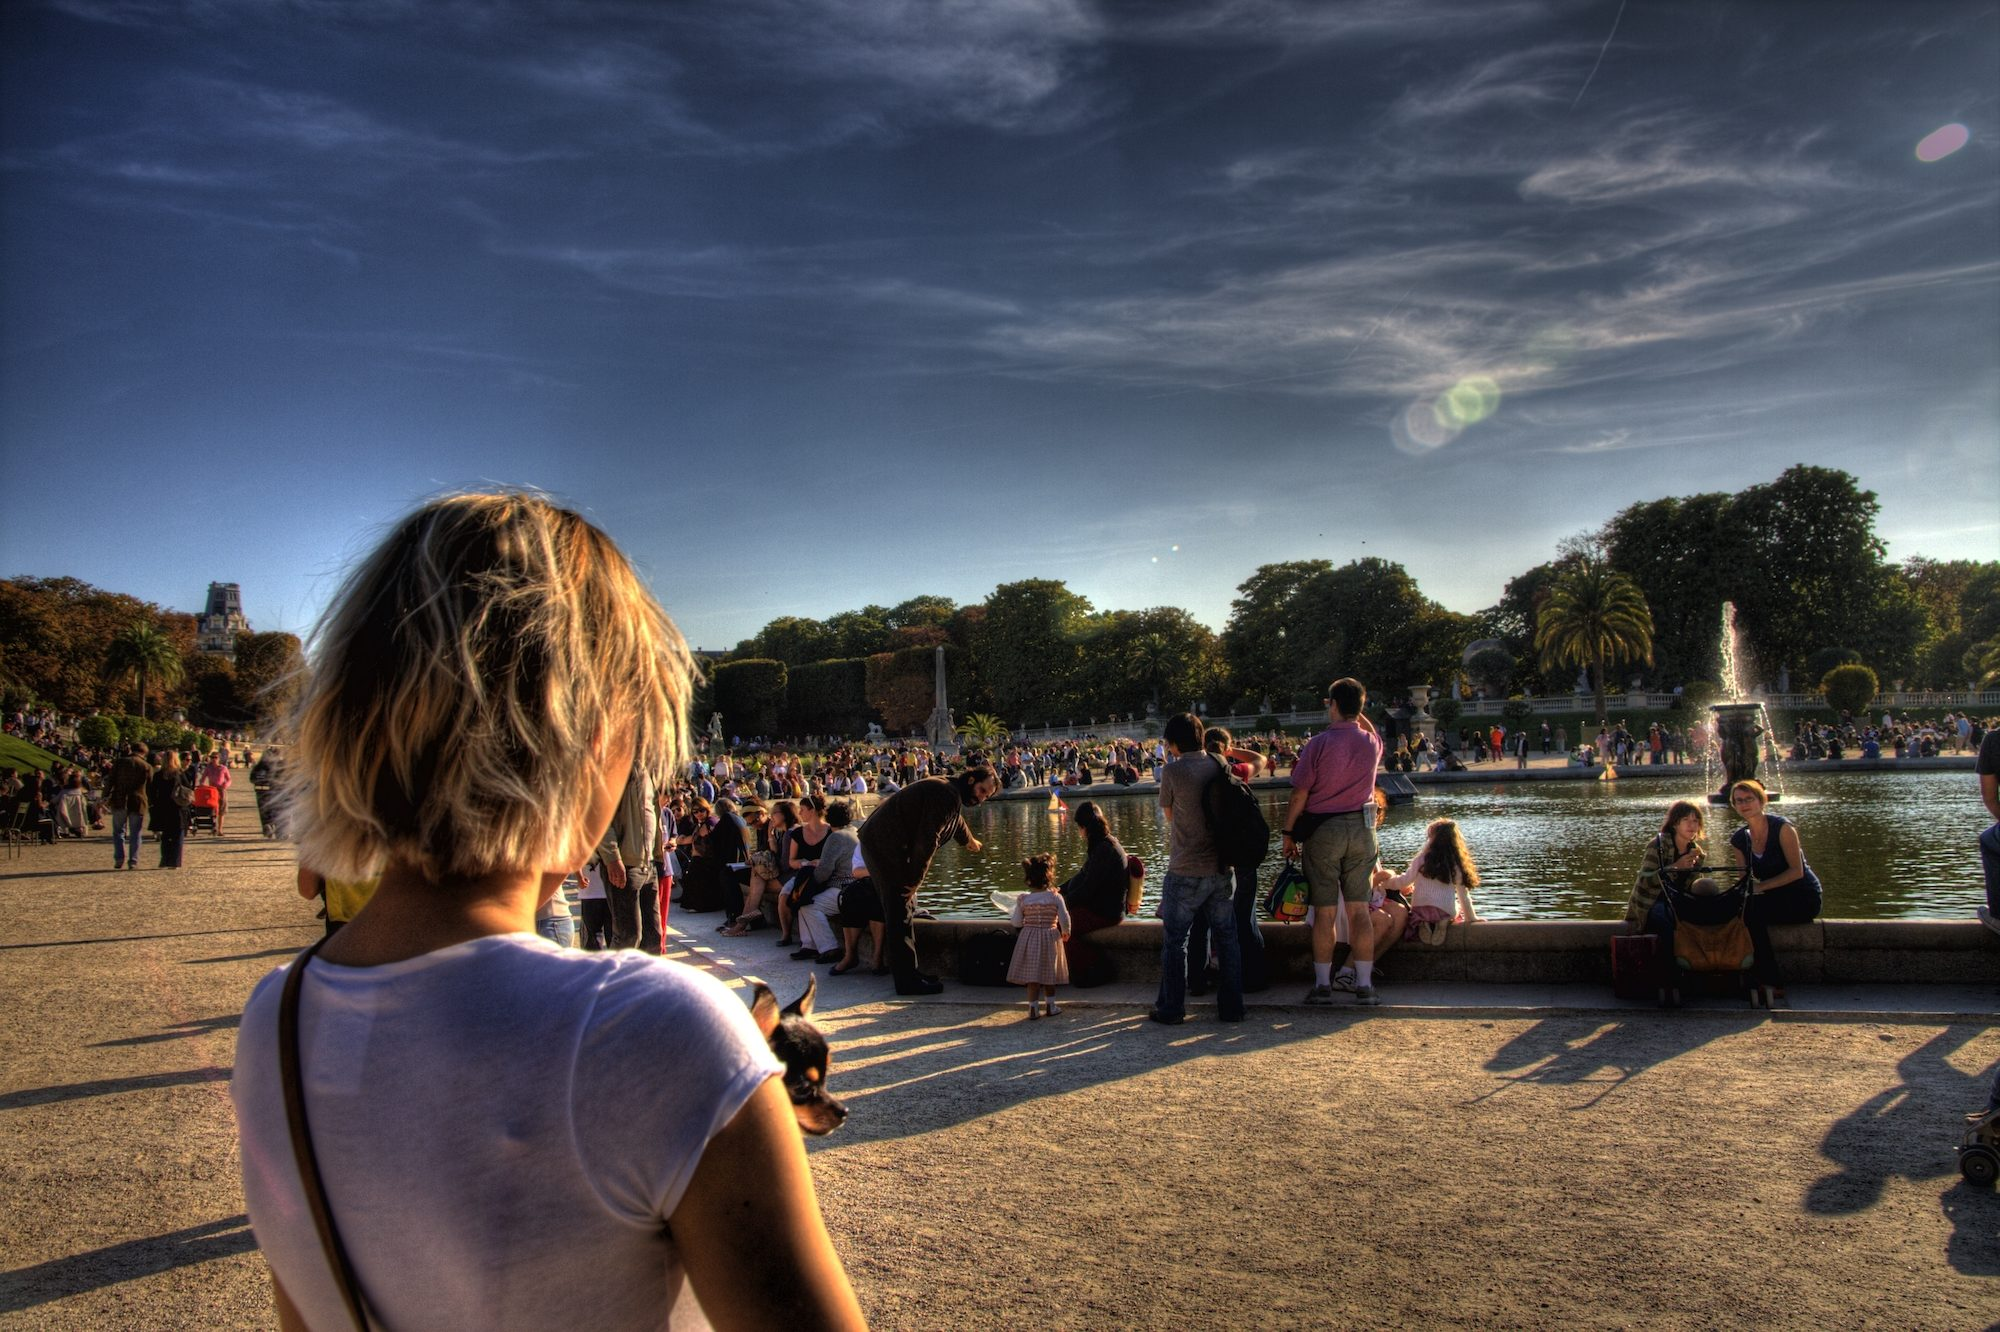 A woman looks at the crowds sitting around the pond at the Tuileries Gardens, one of HiP Paris Blog's best places to tan in Paris in summer.